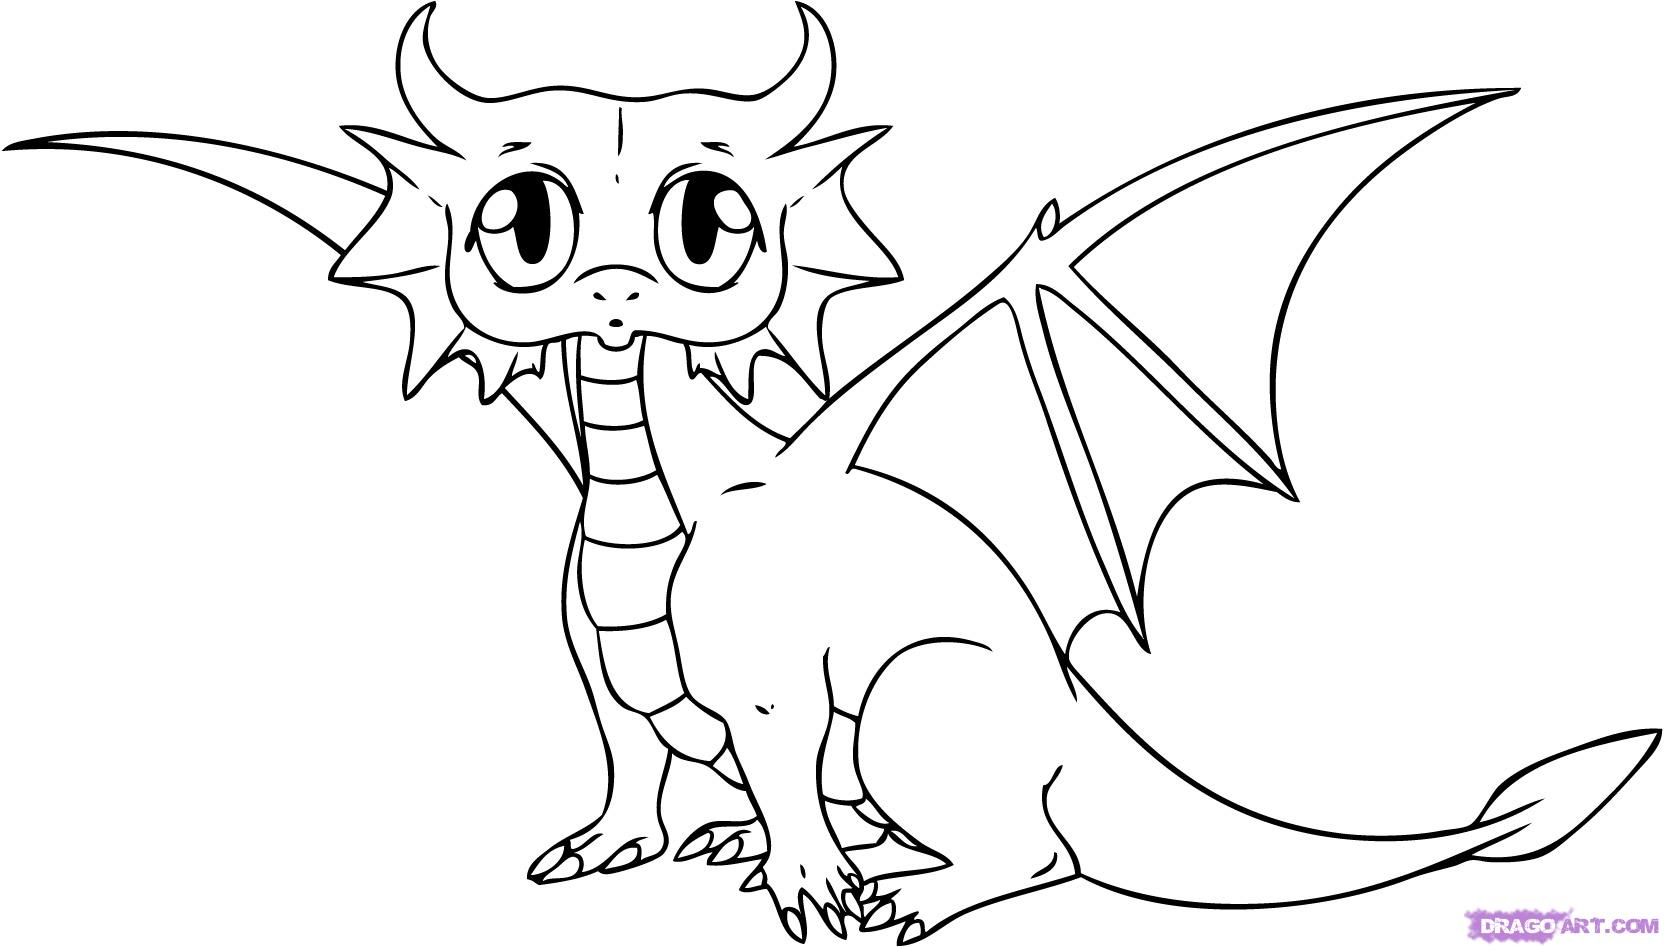 1664x948 Cartoon Dragon Drawing How To Draw A Cartoon Dragon, Step By Step